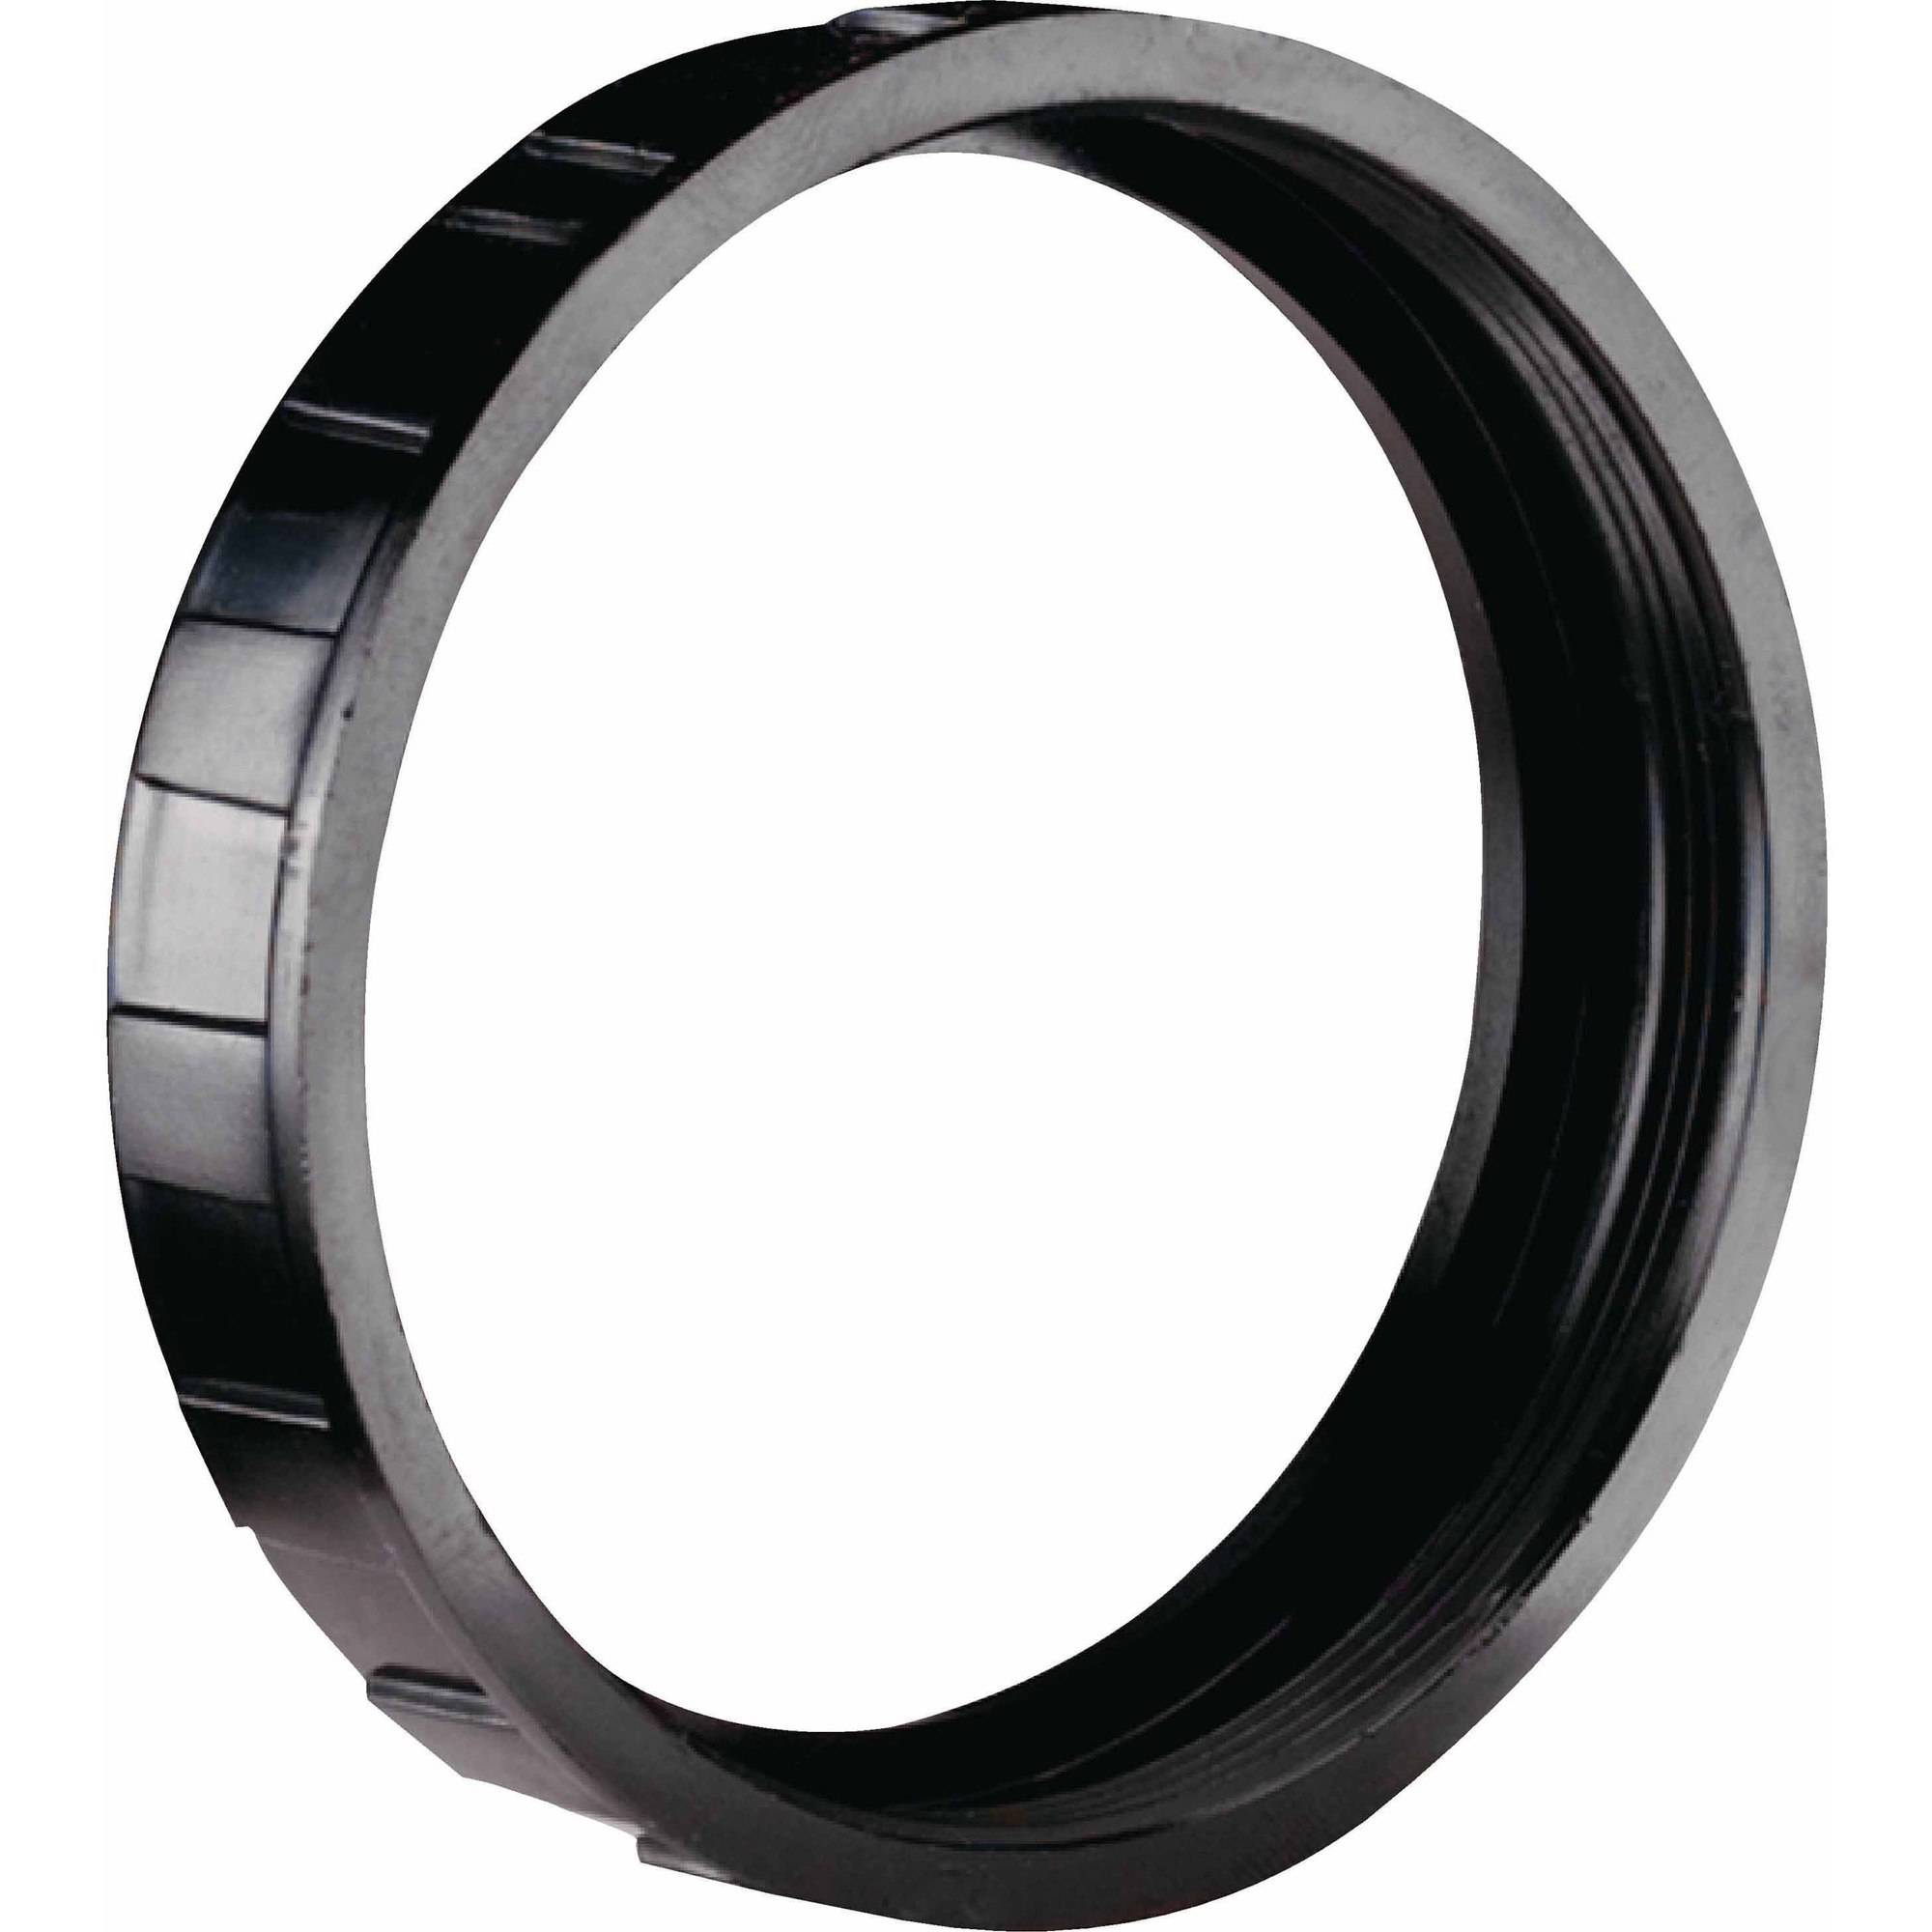 Marinco 500R Threaded Locking Sealing Ring For Use with 50 Amp Systems